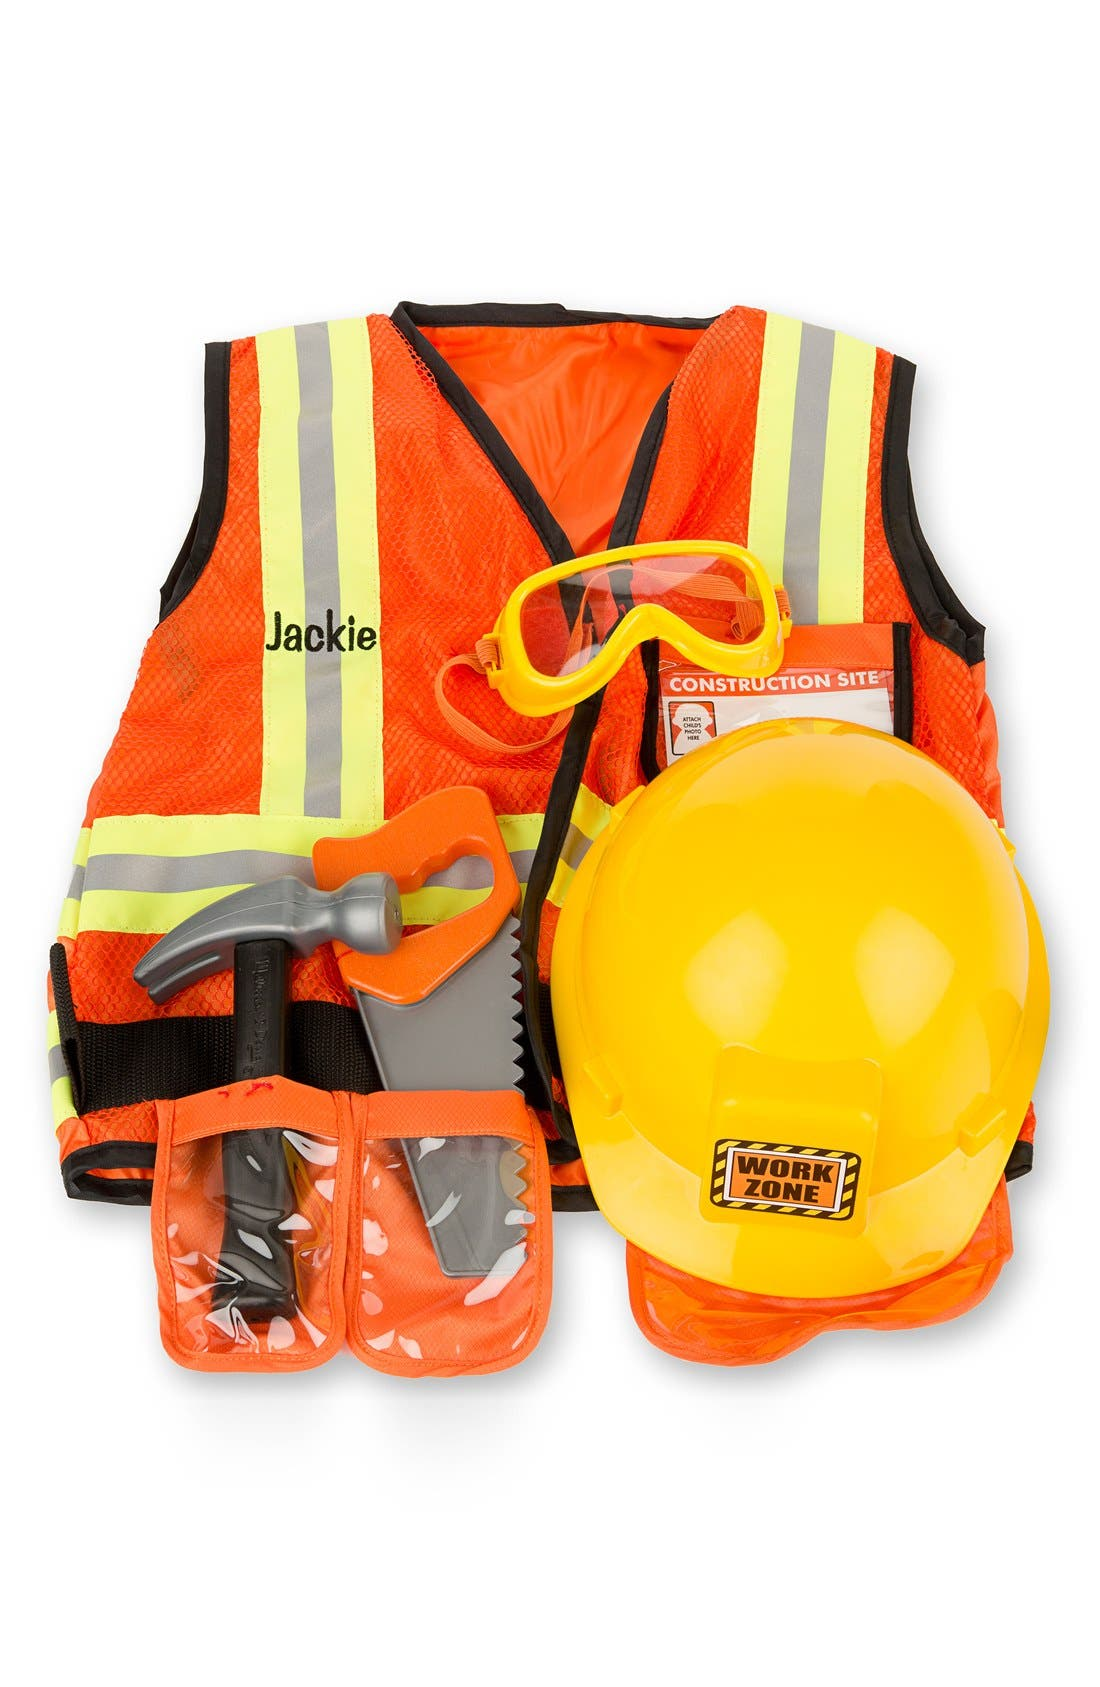 Alternate Image 1 Selected - Melissa & Doug 'Construction Worker' Personalized Costume Set (Little Kid)